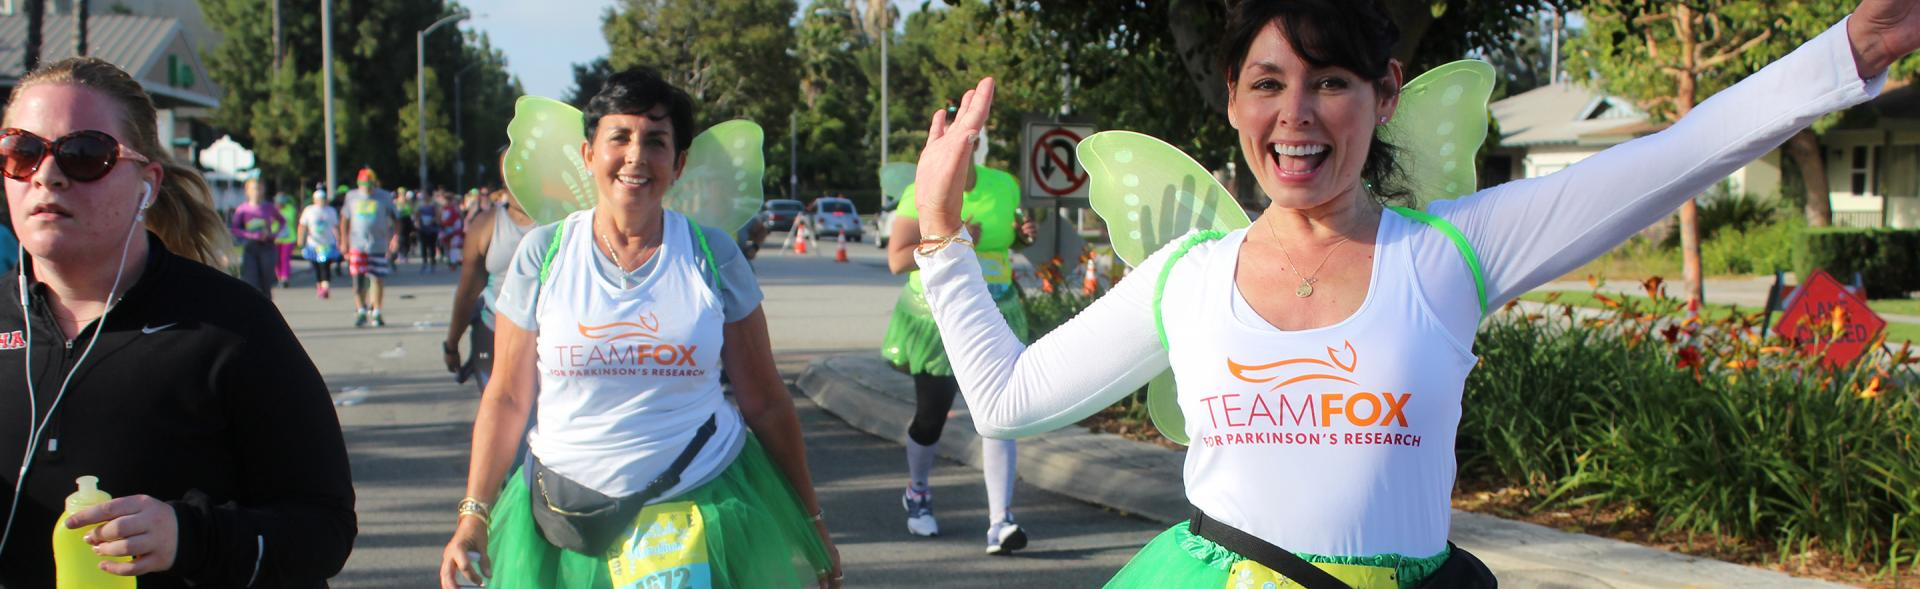 Two females in fairy costumes at a Team Fox event.